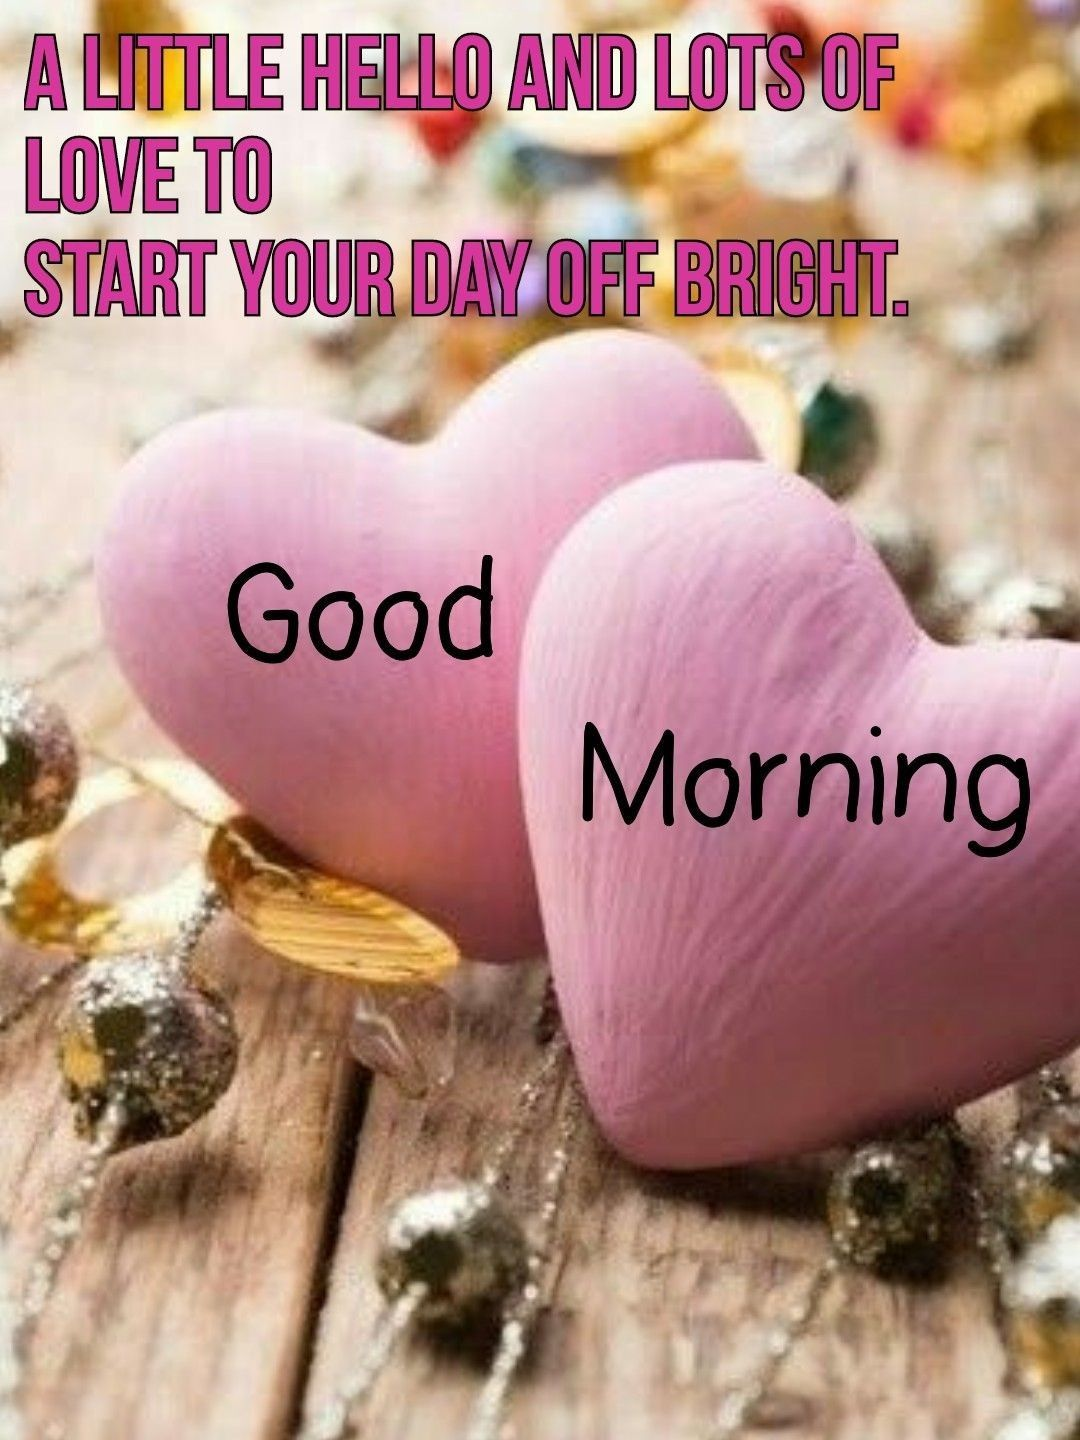 Good Morning My Love Messages For Your Lover Good Morning Love Say It With First Breath In The State